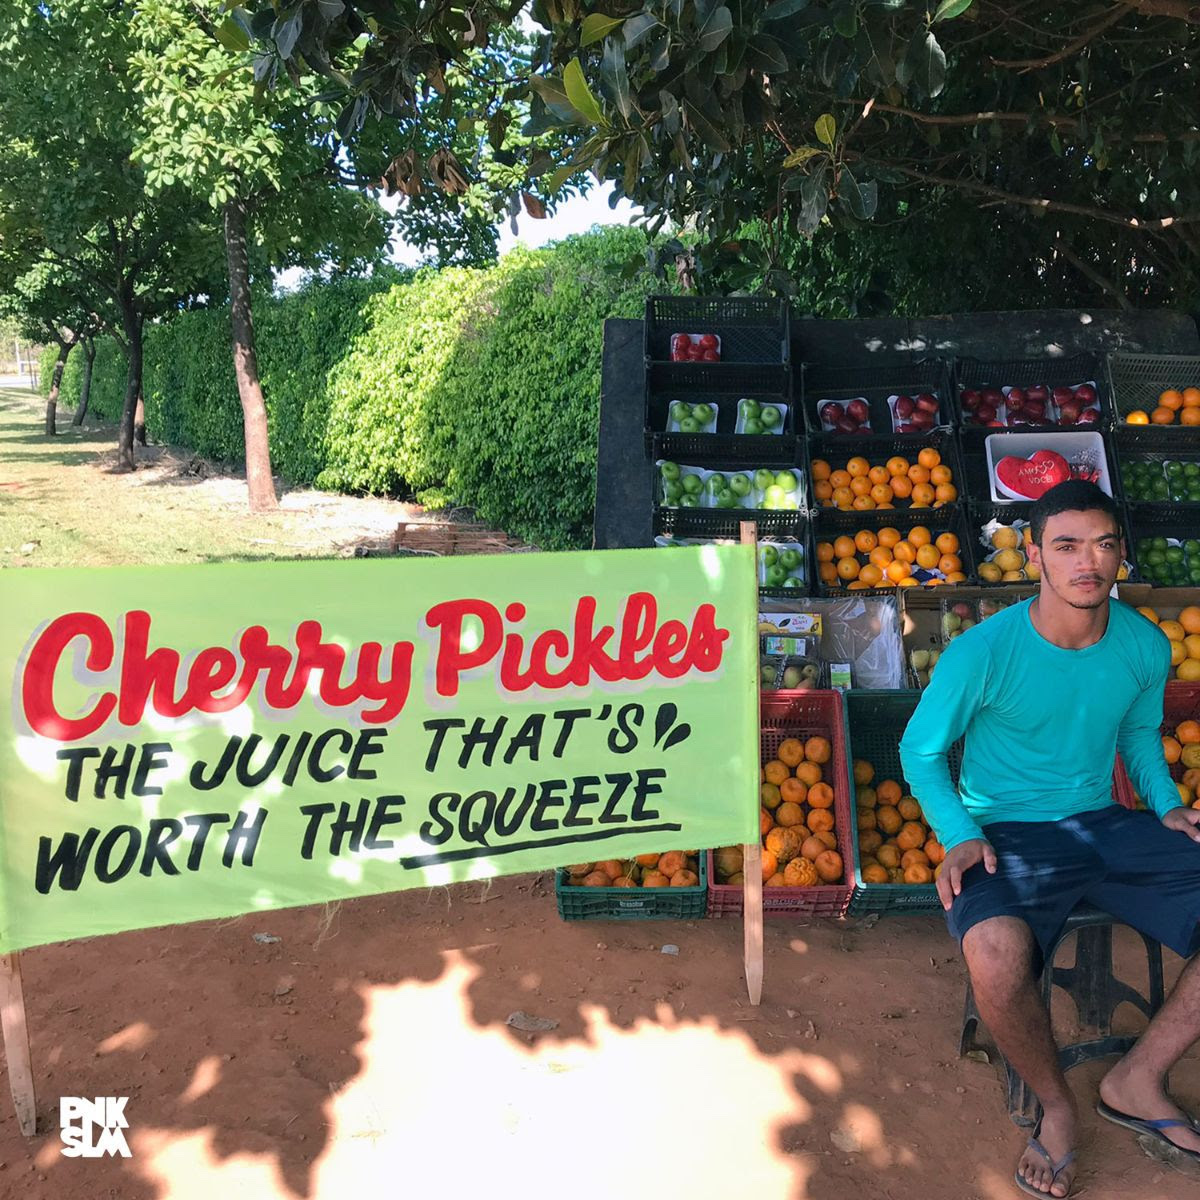 cherry pickles the juice cover art Cherry Pickles Announce New Album The Juice Thats Worth The Squeeze, Share Out of This World: Stream